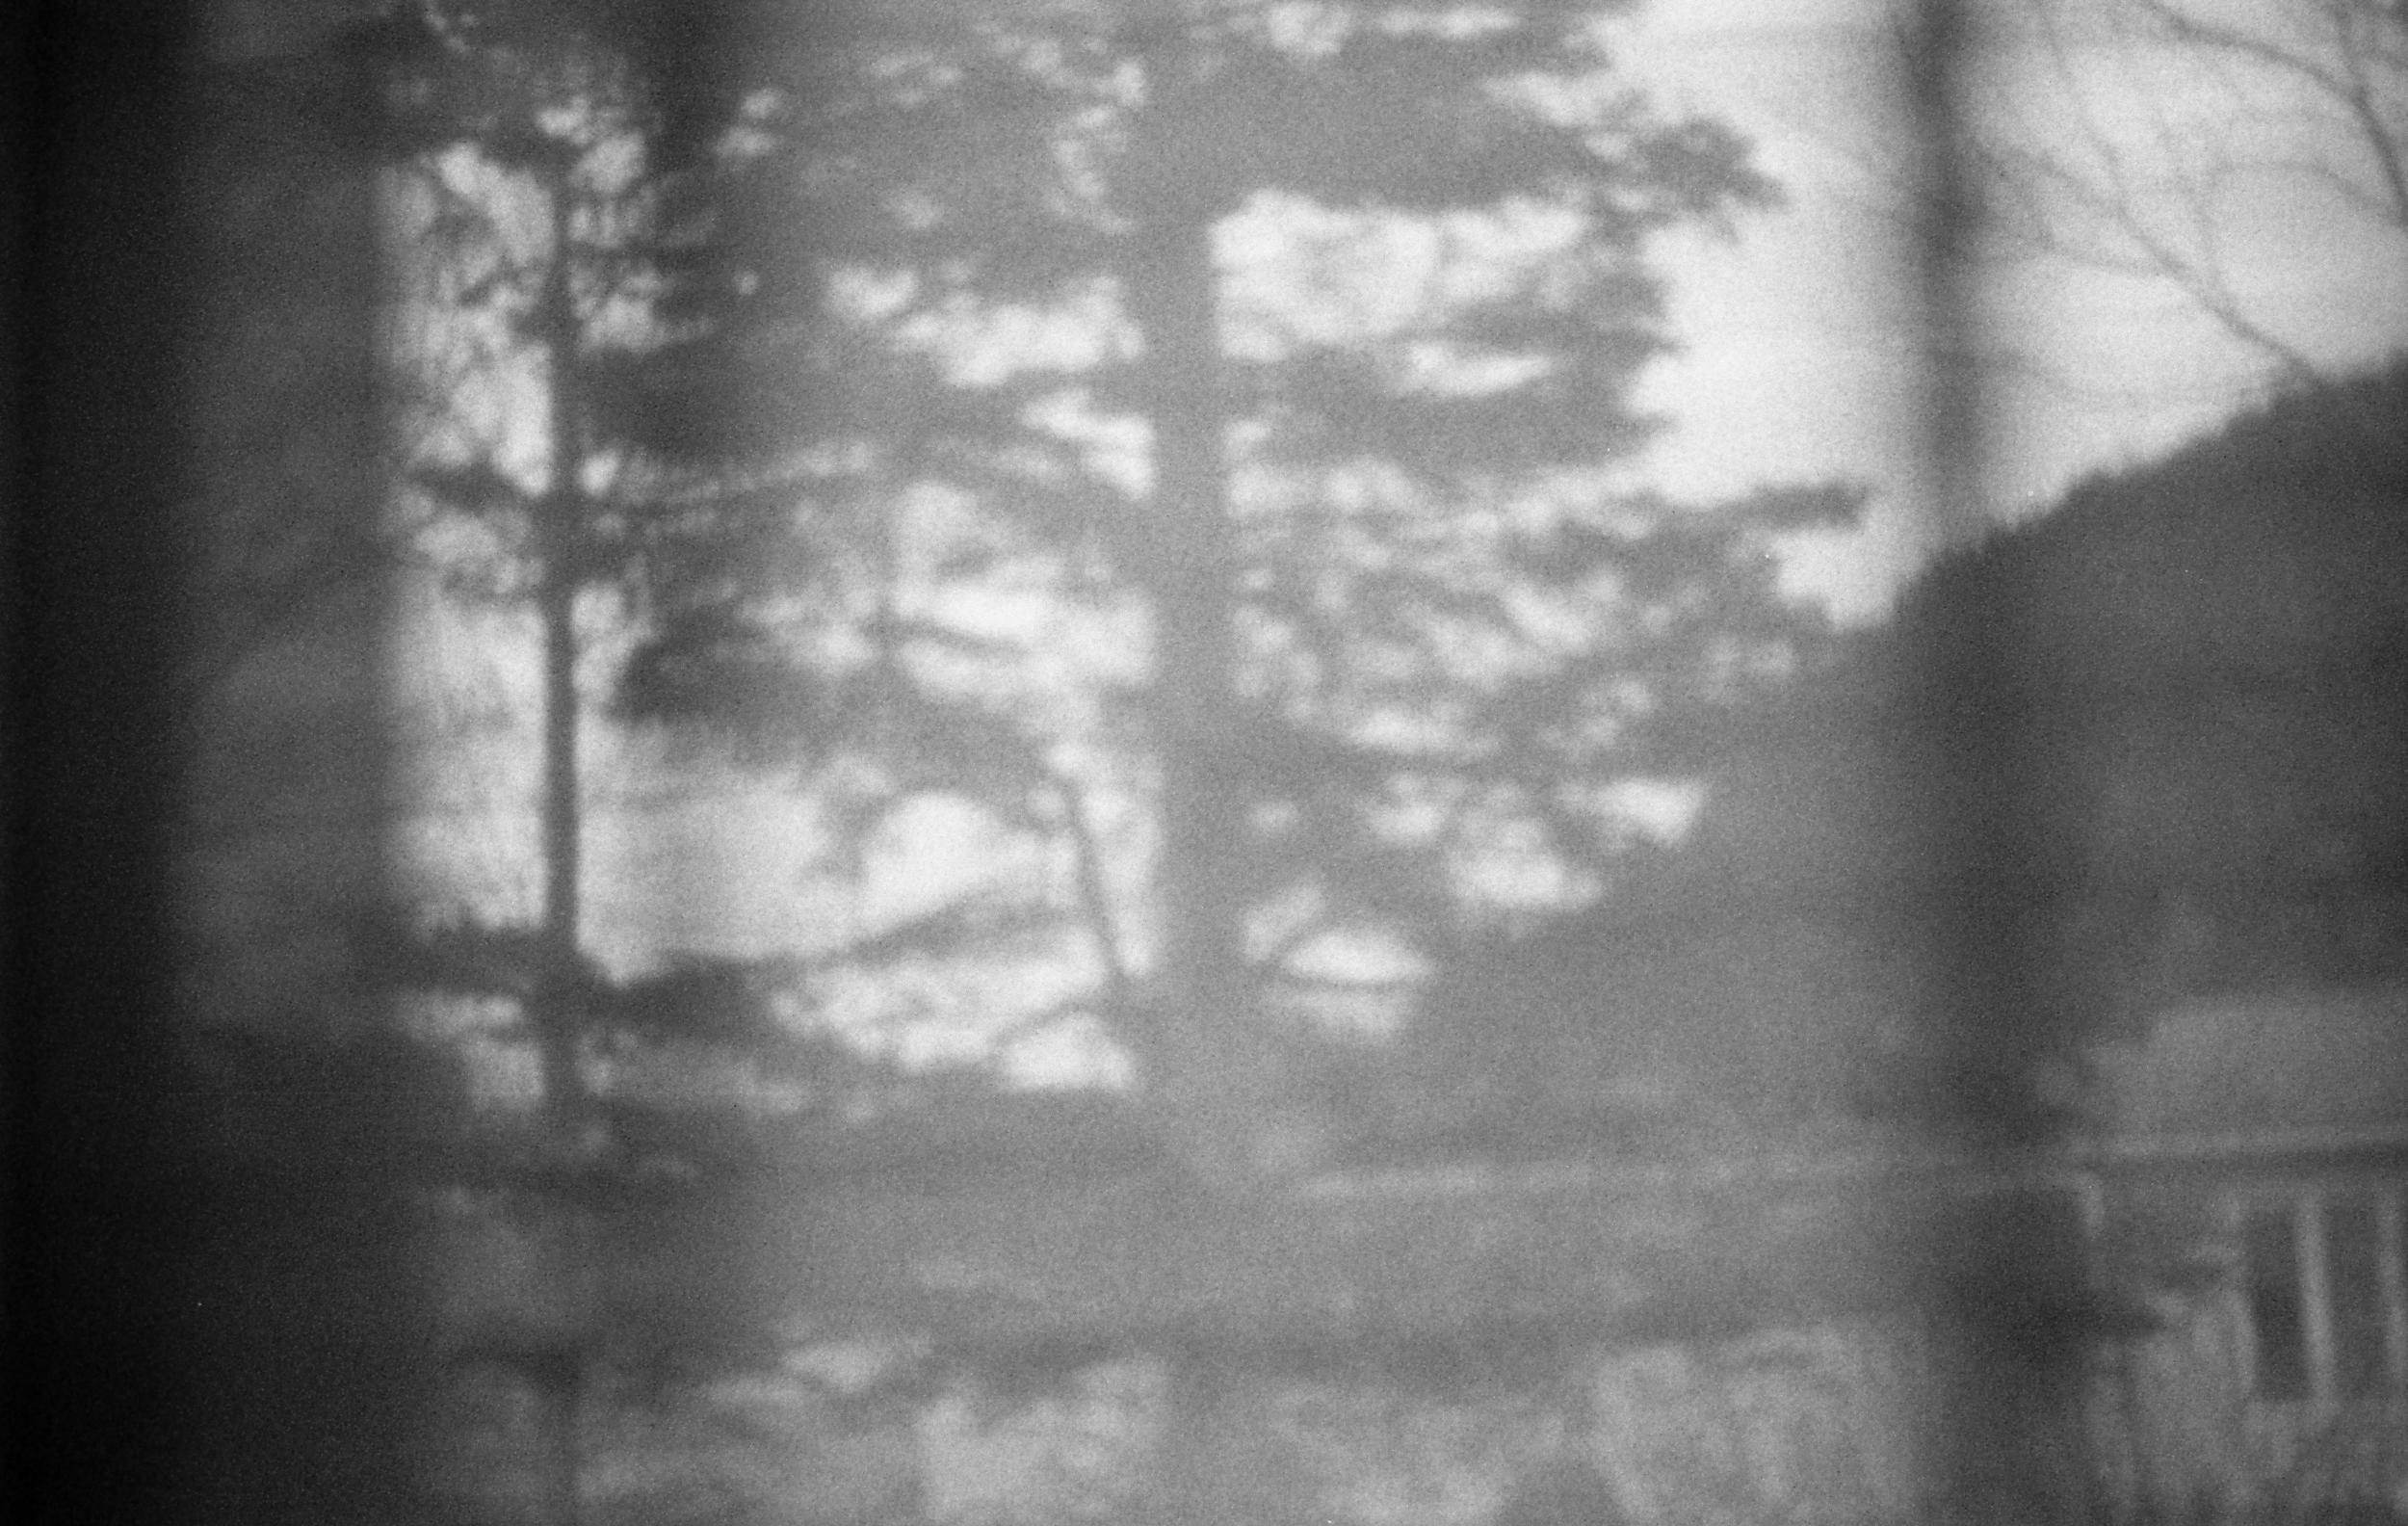 Memory fragment. The view from my old bedroom. That tree seems like it came out of nowhere.